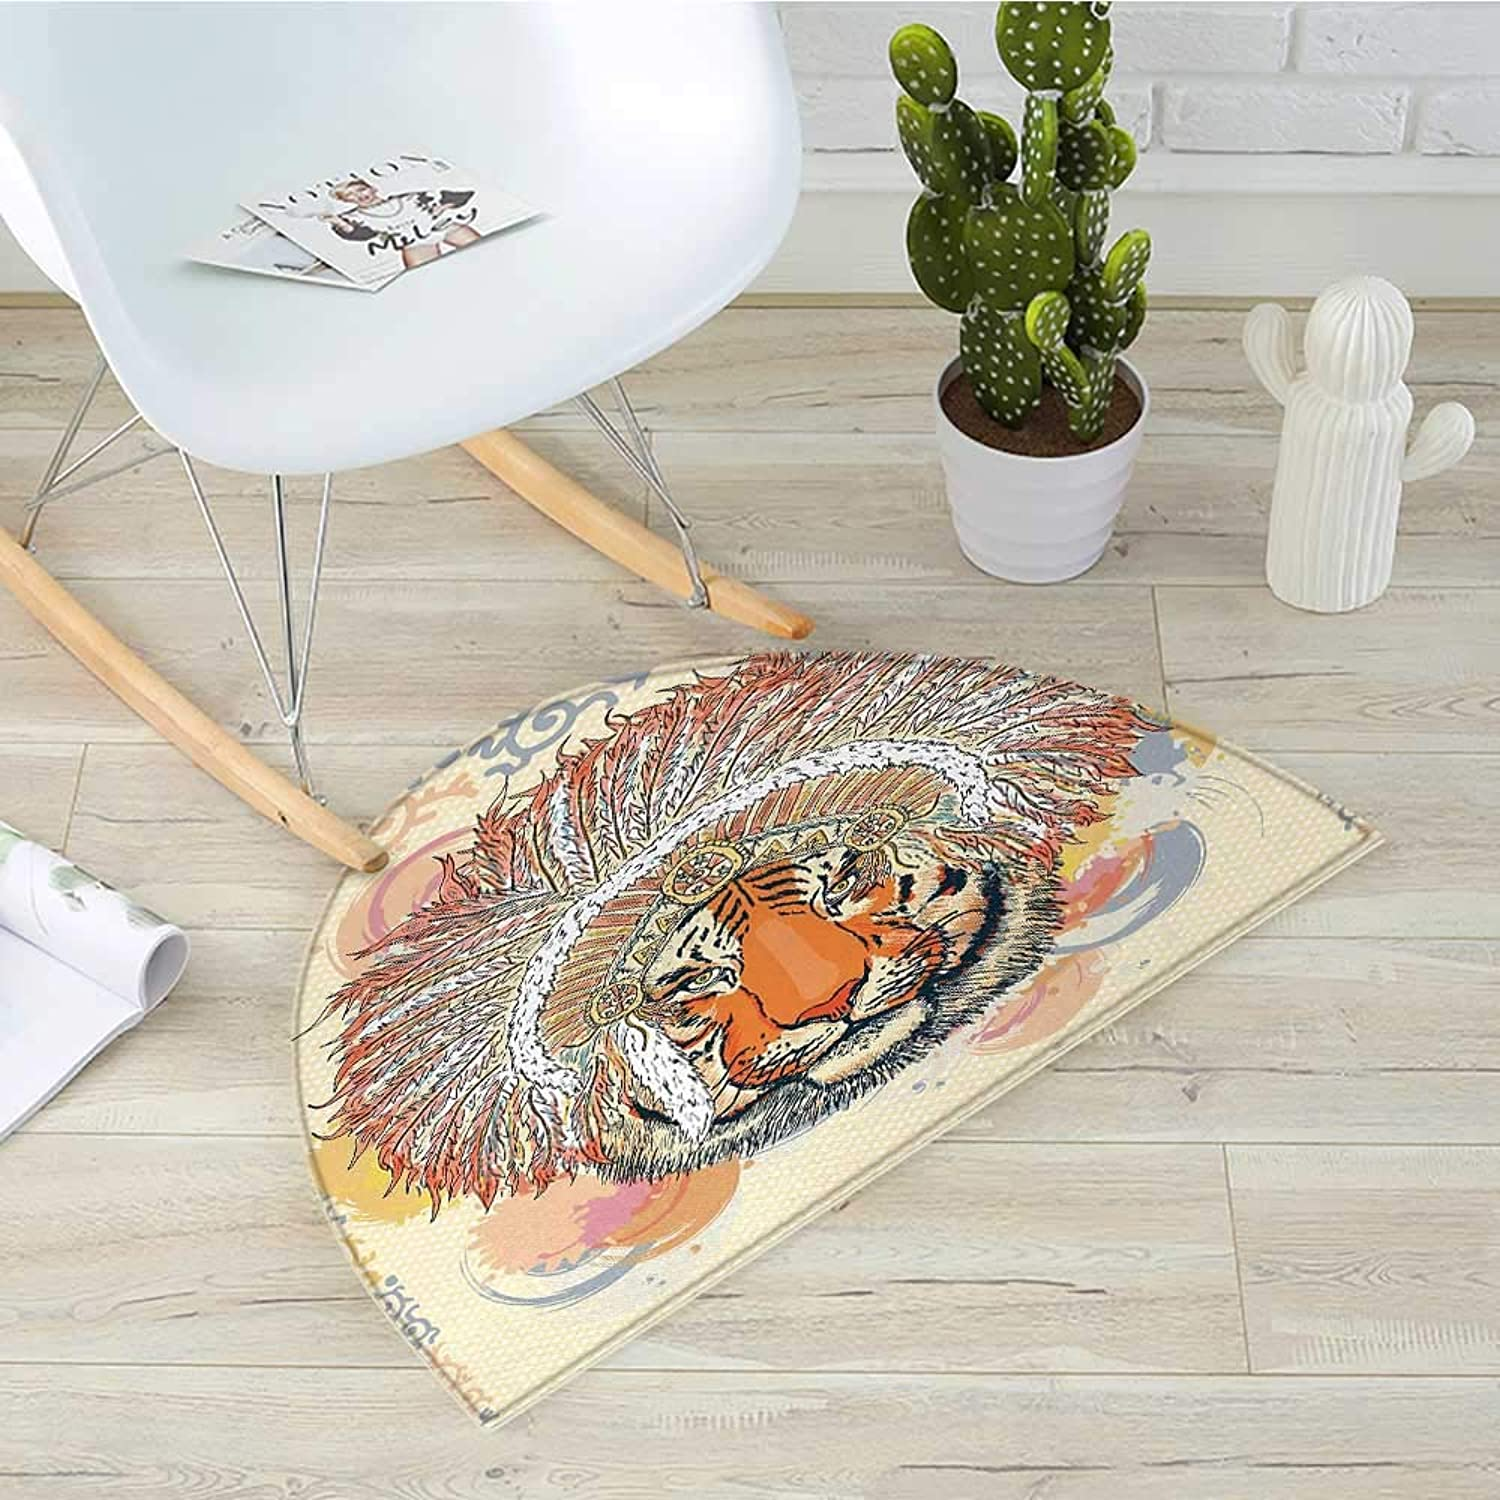 Tribal Semicircular CushionAfrican Safari Tiger Portrait with Native American Chef Feathers Bohemian Design Entry Door Mat H 31.5  xD 47.2  orange Peach